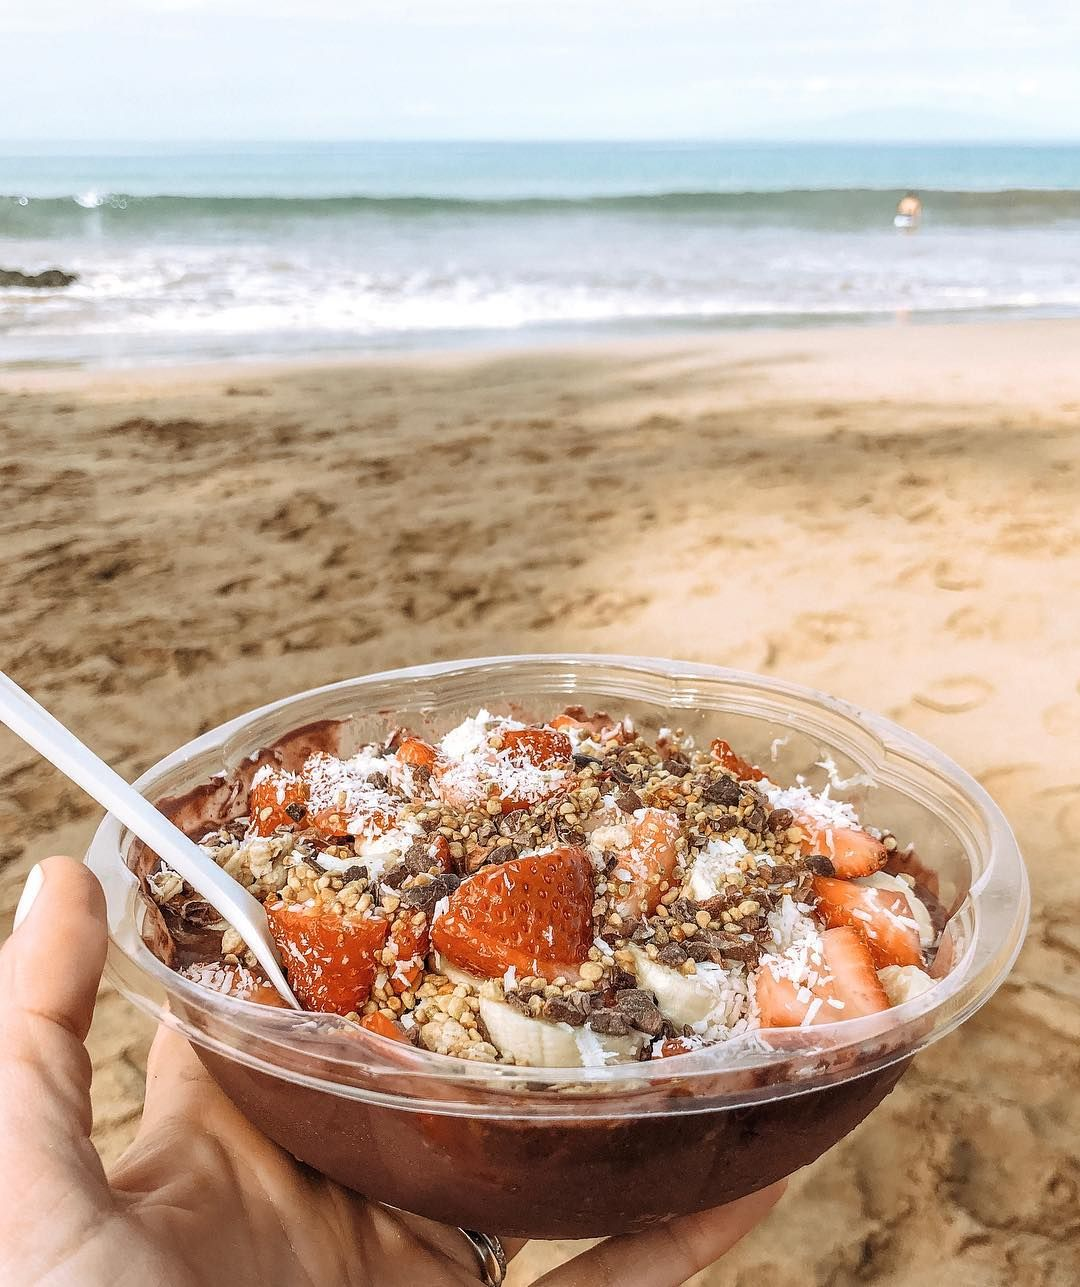 Breakfast on the beach! Leni woke up at 4am so this is technically my second breakfast... but who's counting. #pregnant #dontjudgeme (Thanks for the açai bowl suggestion @jennakutcher !)